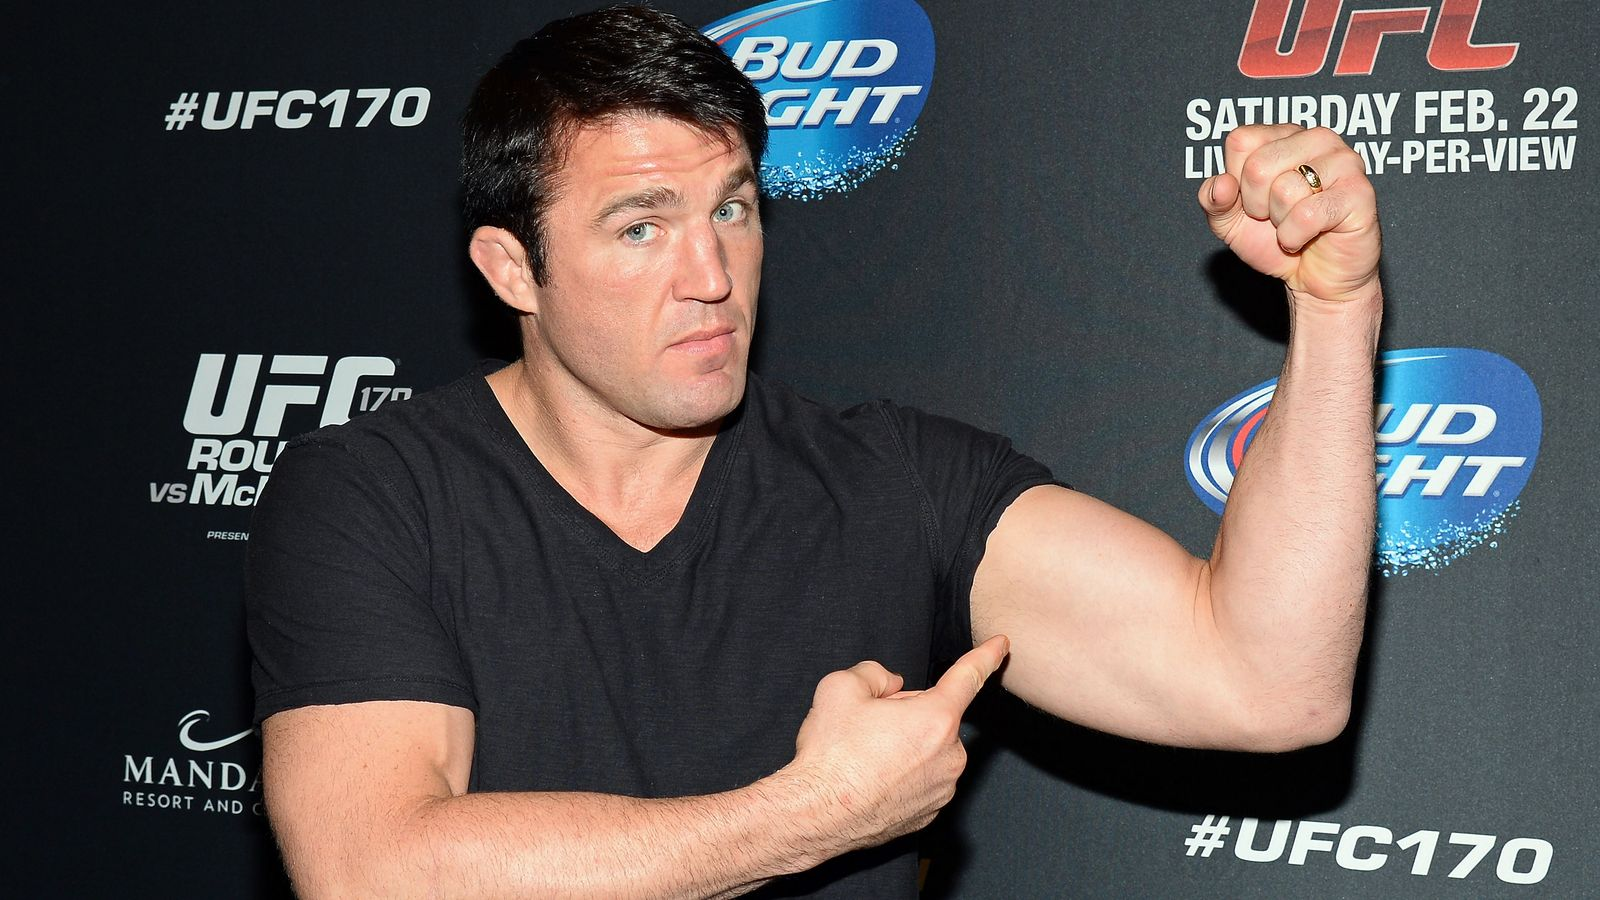 chael sonnen leaves ufc for bellator mma 2016 images